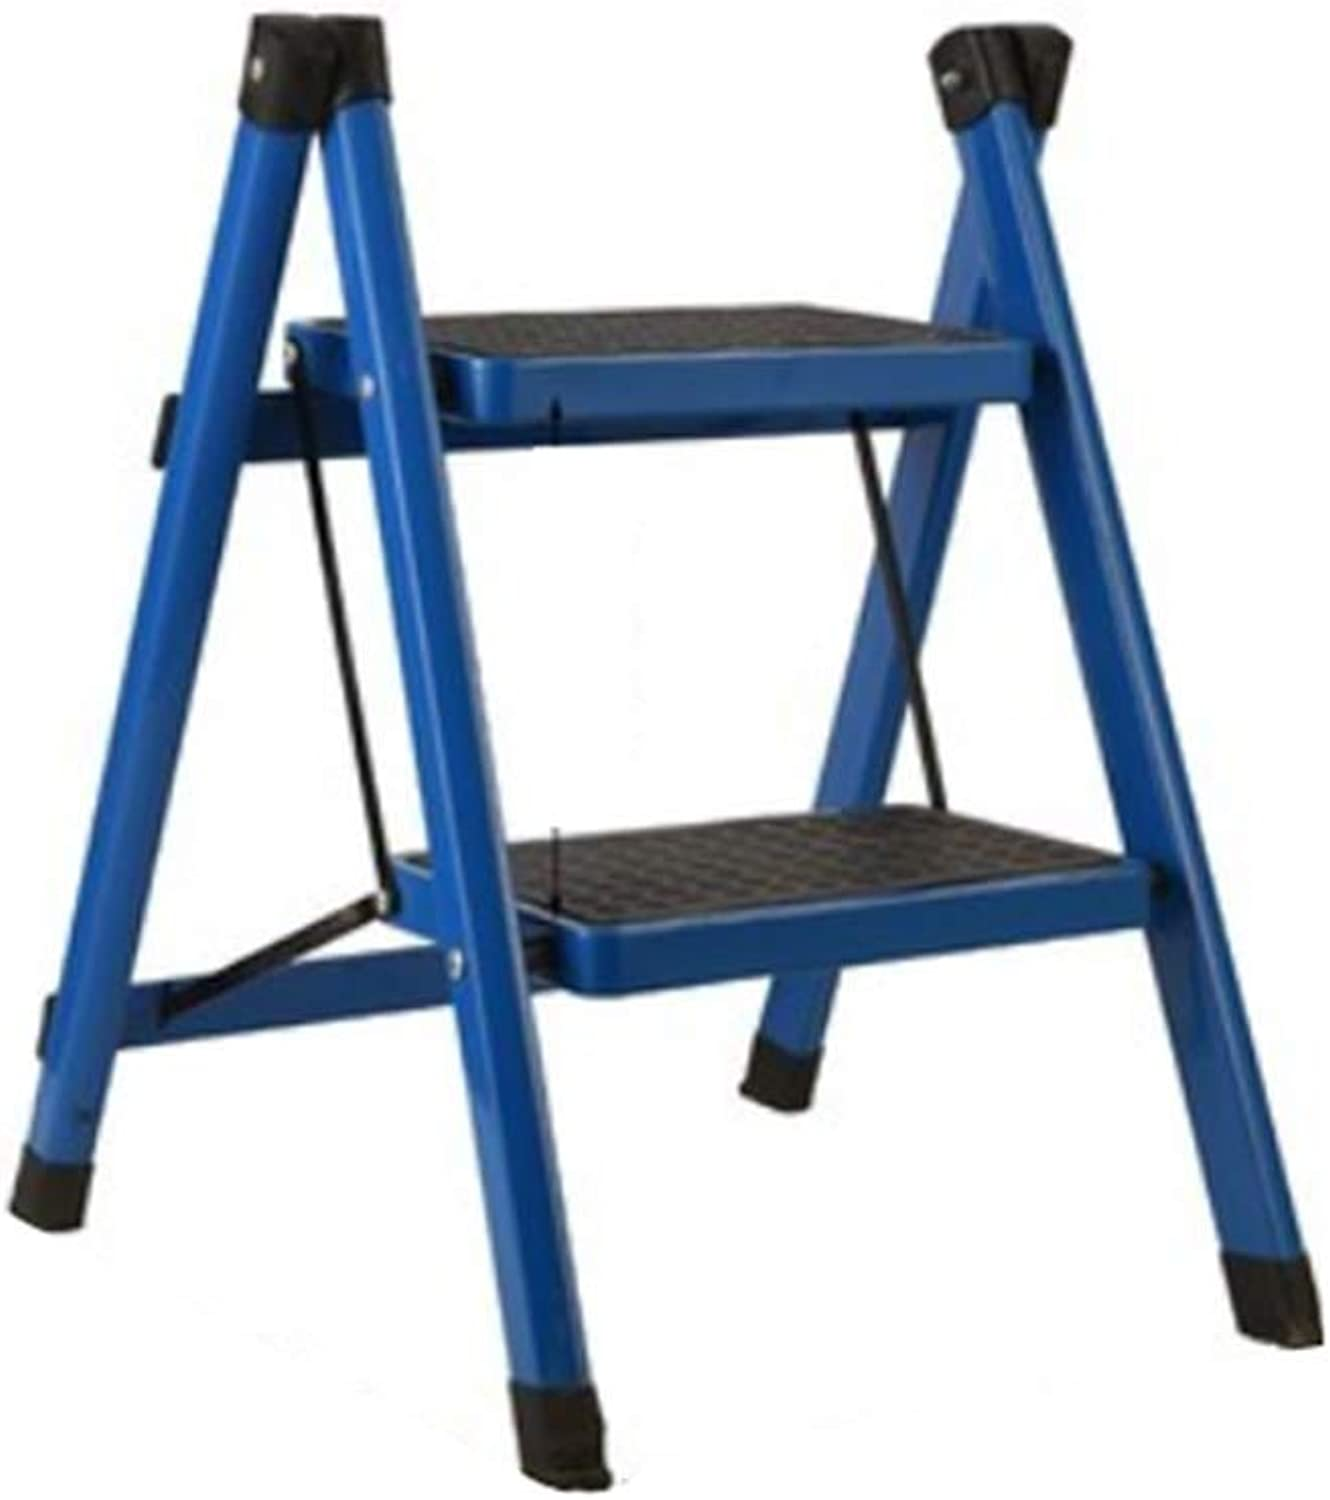 GAIXIA-Ladder stool Staircase Staircase Two-Story Folding Stool, Stair Chair Suitable for Kitchen Bedroom Interior Multi-Purpose Household Contraction Ladder 40x51x44CM (color   bluee)